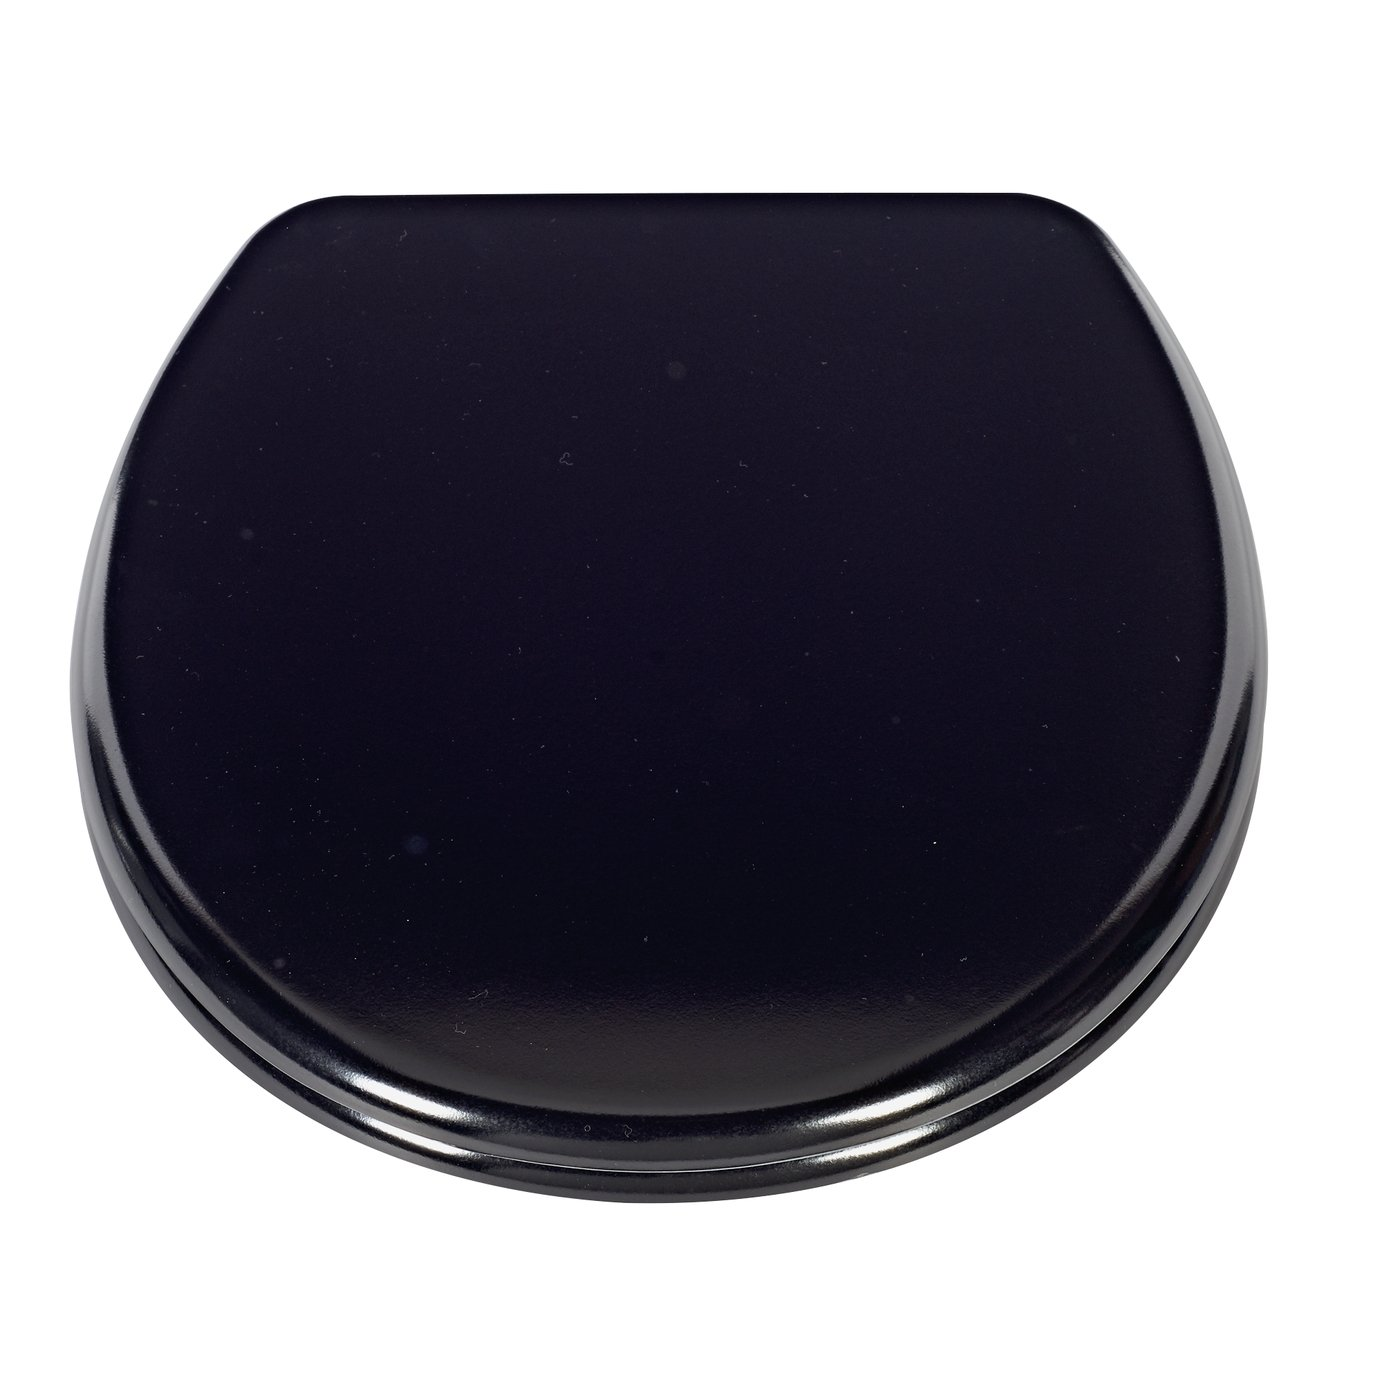 easy home toilet seat. home thermoplastic slow close easy clean toilet seat - black home